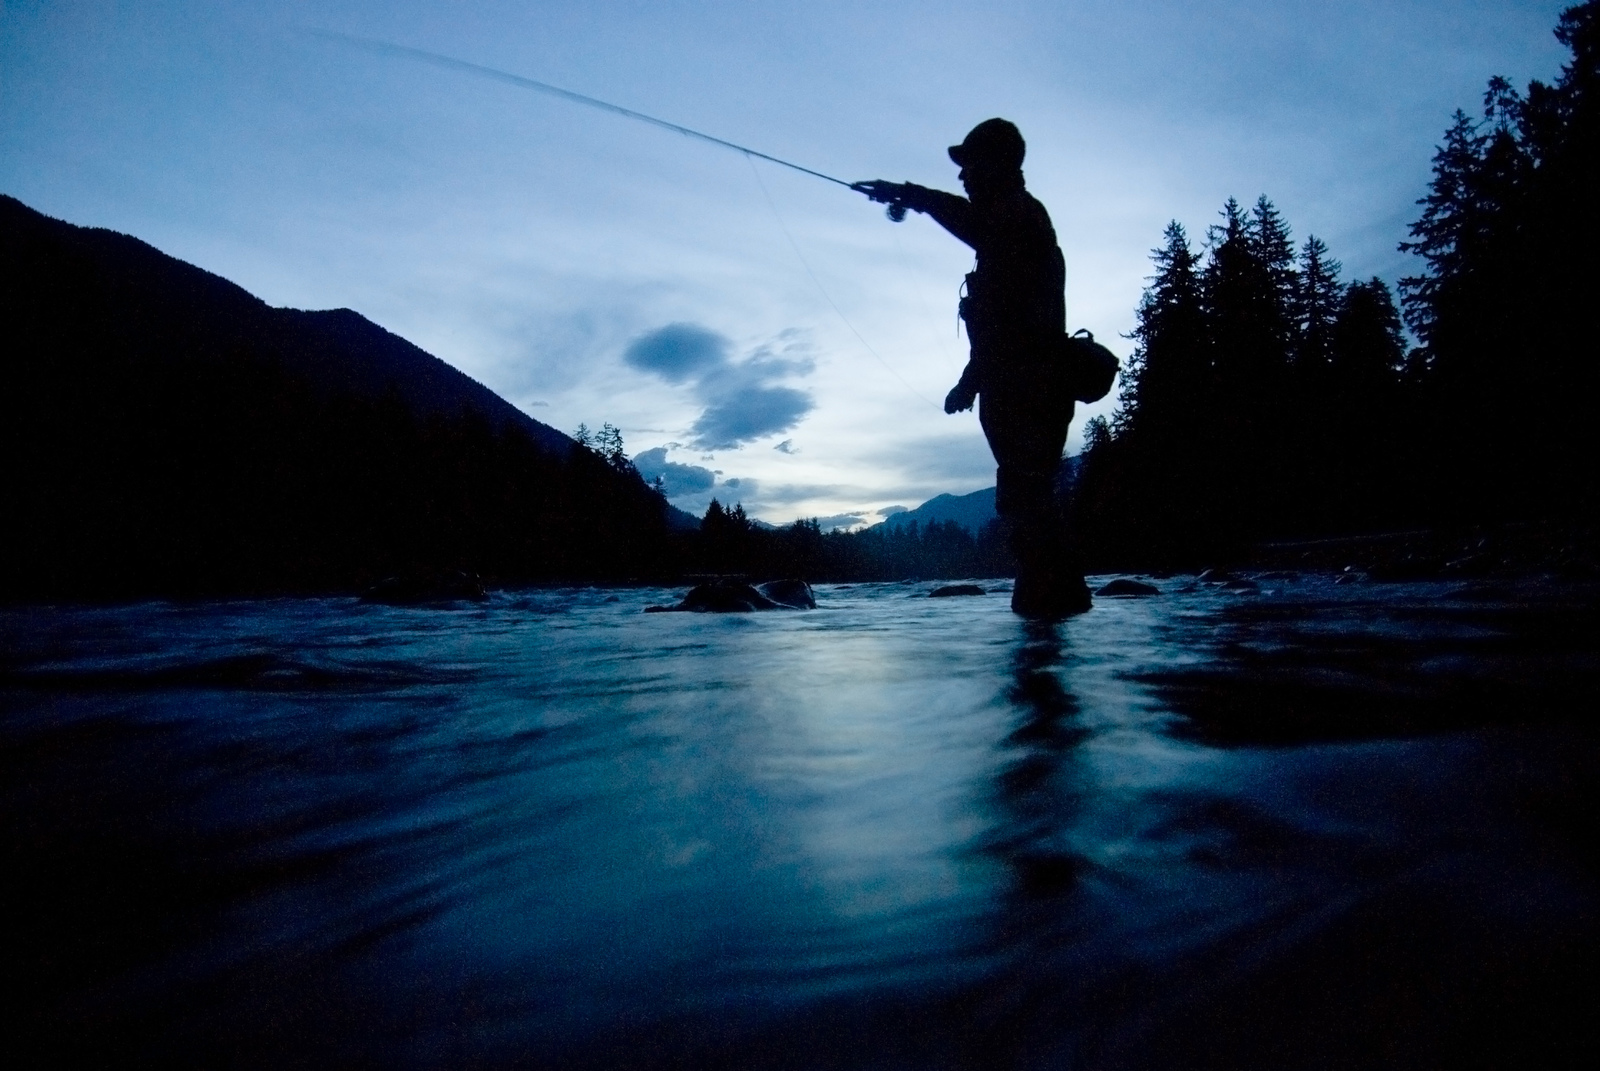 Fishing guide Shannon Carroll flyfishing at dawn for steelhead on the Hoh River in the Olympic Peninsula of Washington. © Bridget Besaw